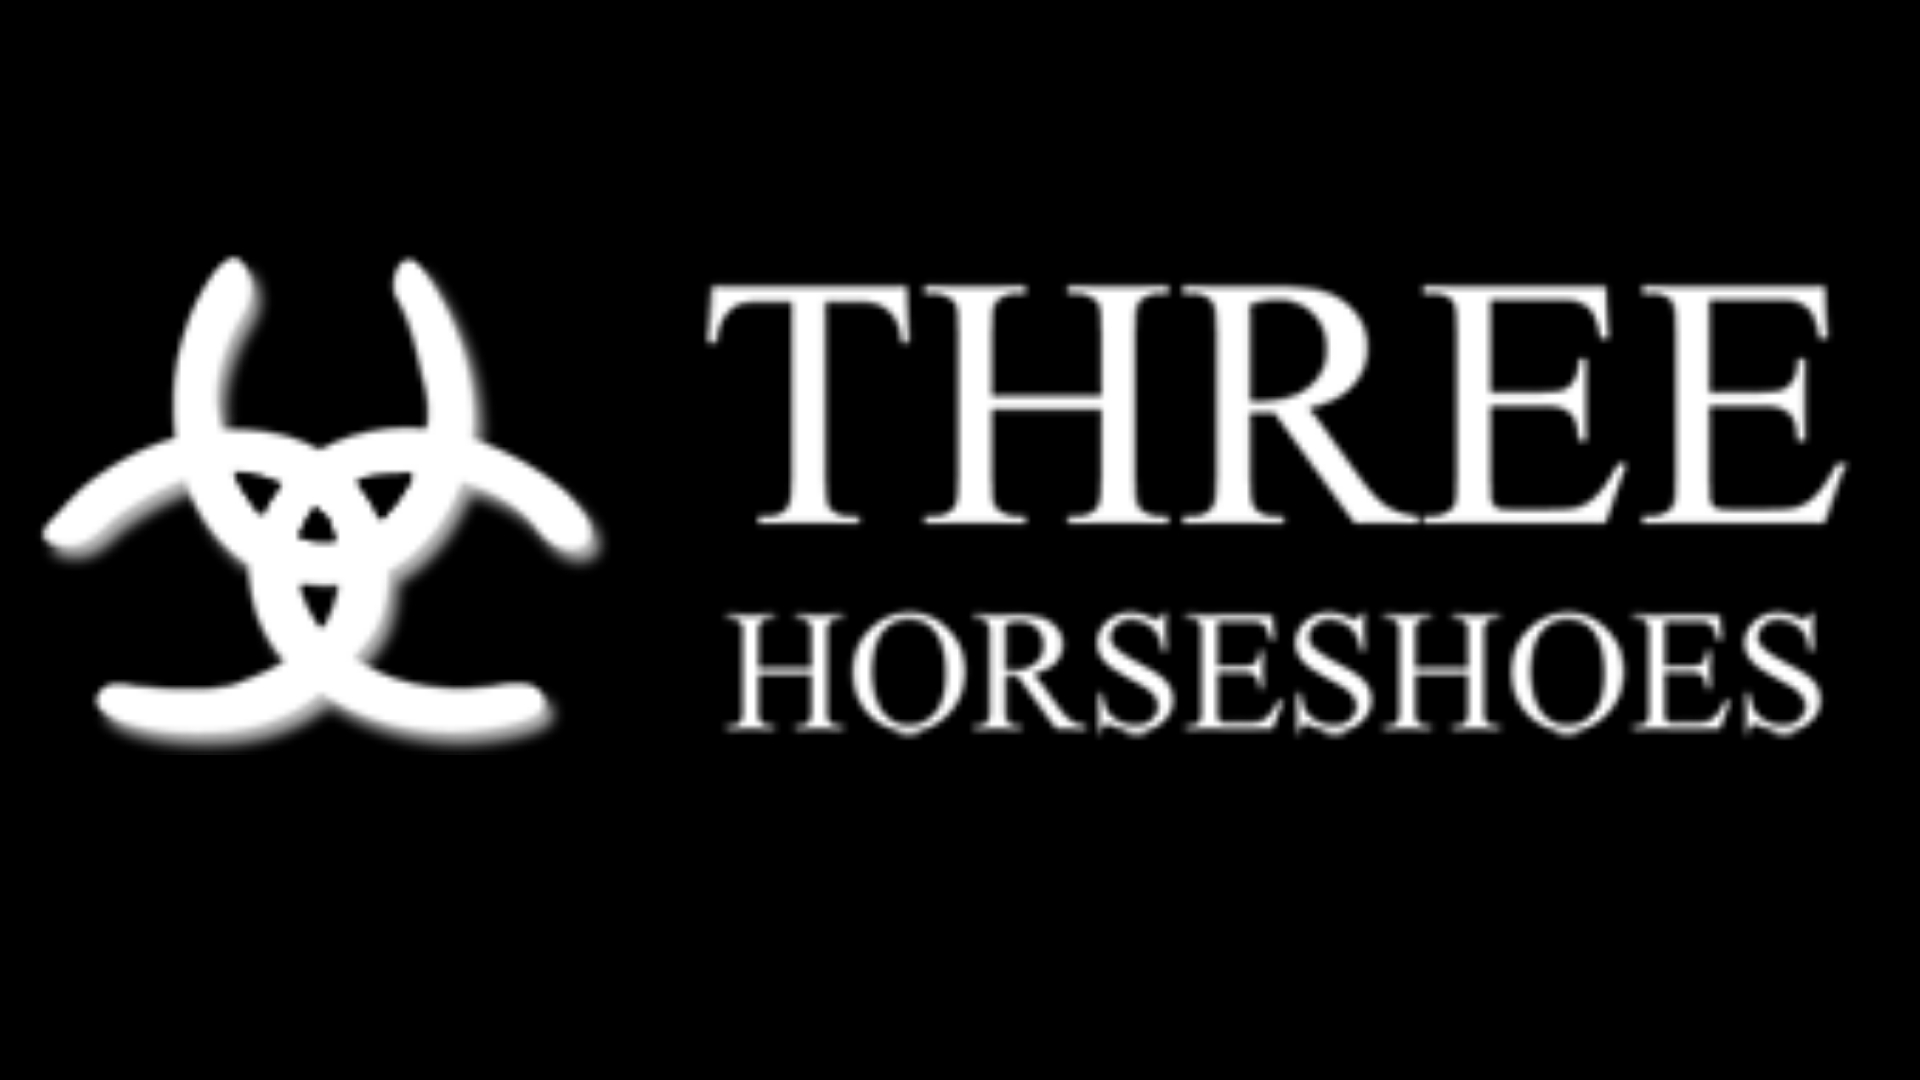 Three Horse Shoes logo